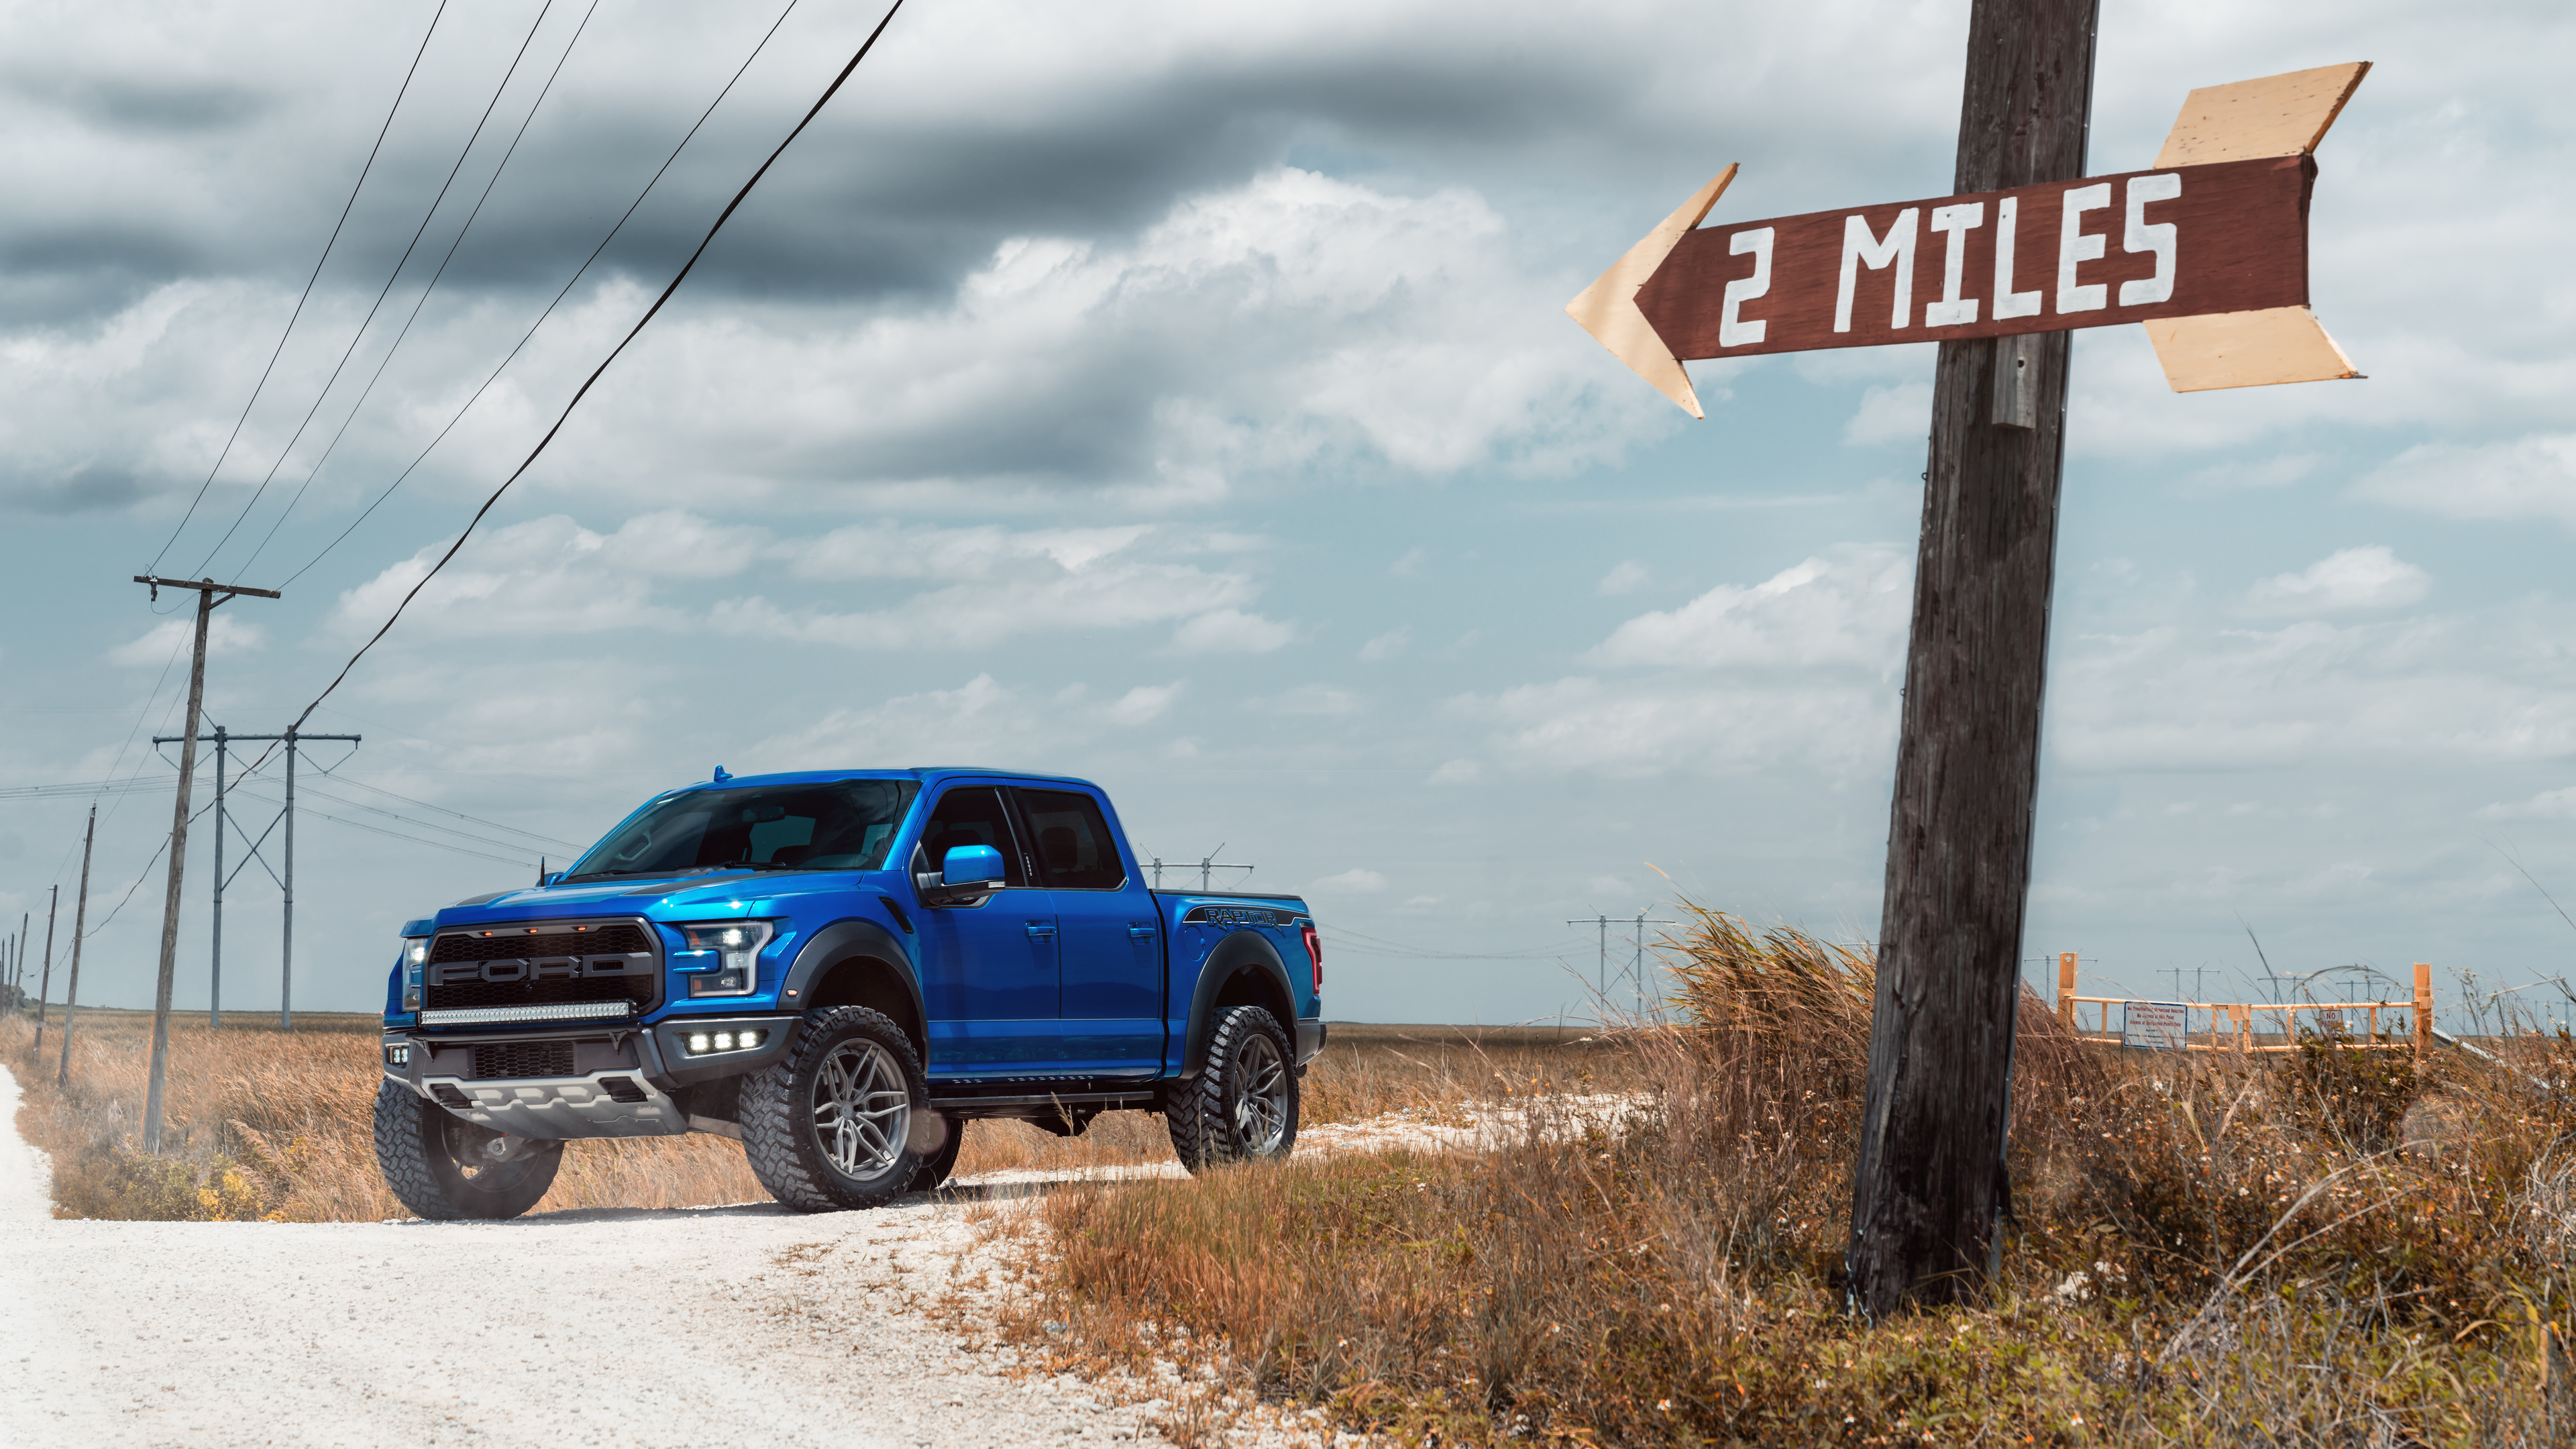 ford raptor 1565054961 - Ford Raptor - truck wallpapers, hd-wallpapers, ford wallpapers, ford raptor wallpapers, ford ranger raptor wallpapers, cars wallpapers, 8k wallpapers, 5k wallpapers, 4k-wallpapers, 2019 cars wallpapers